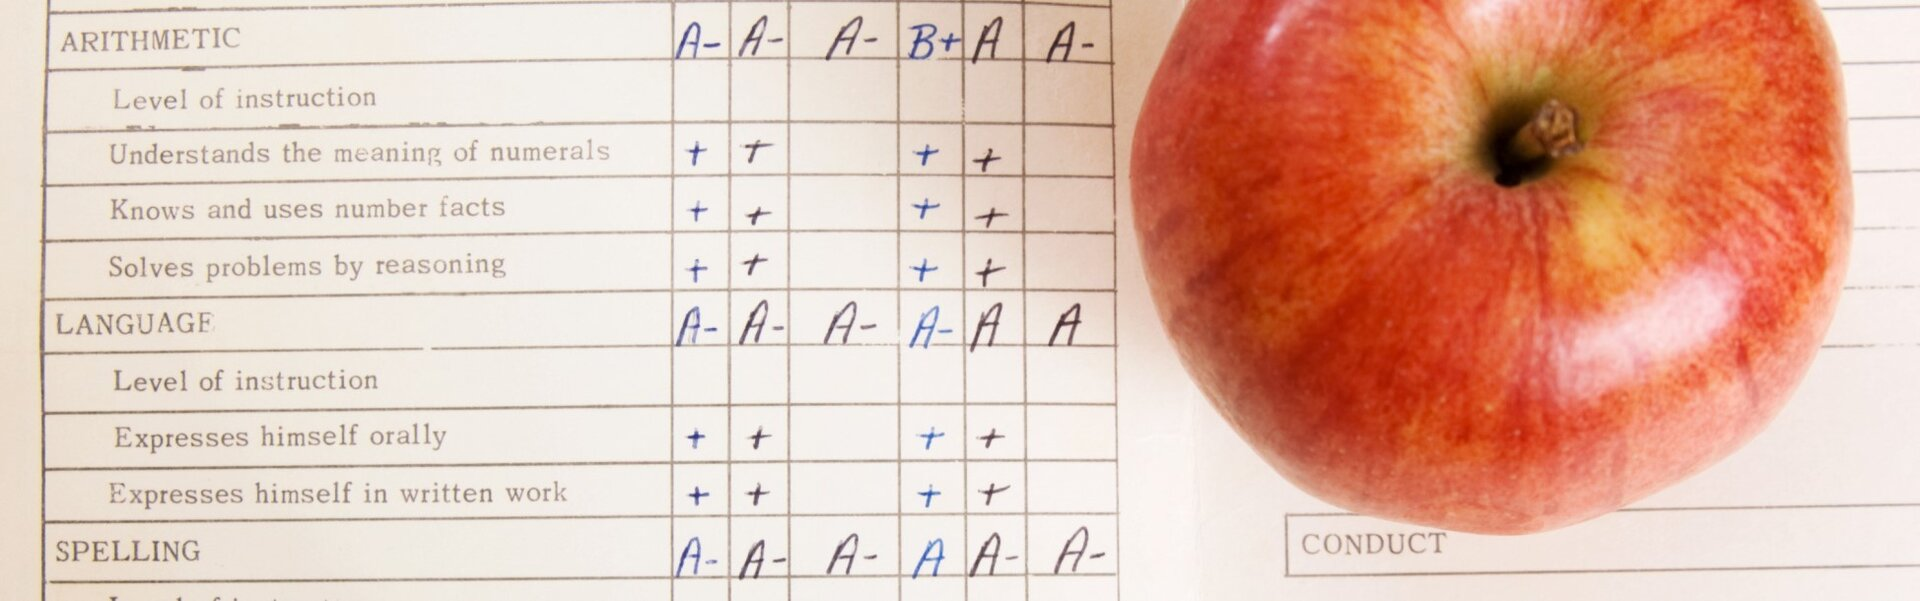 Standards-Based Grading: What Is It and How Can It Help My Students?